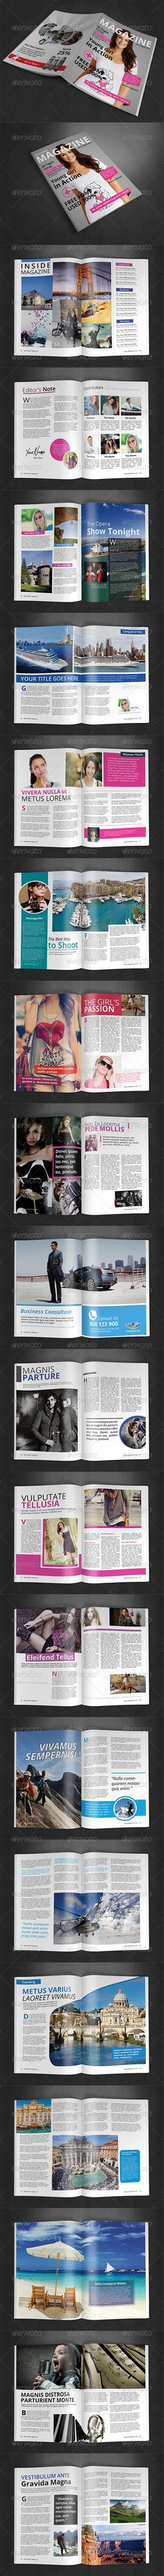 A4 Magazine Template | Vol 5 — Photoshop PSD #content page #a4 size • Available here → https://graphicriver.net/item/a4-magazine-template-vol-5/8631379?ref=pxcr